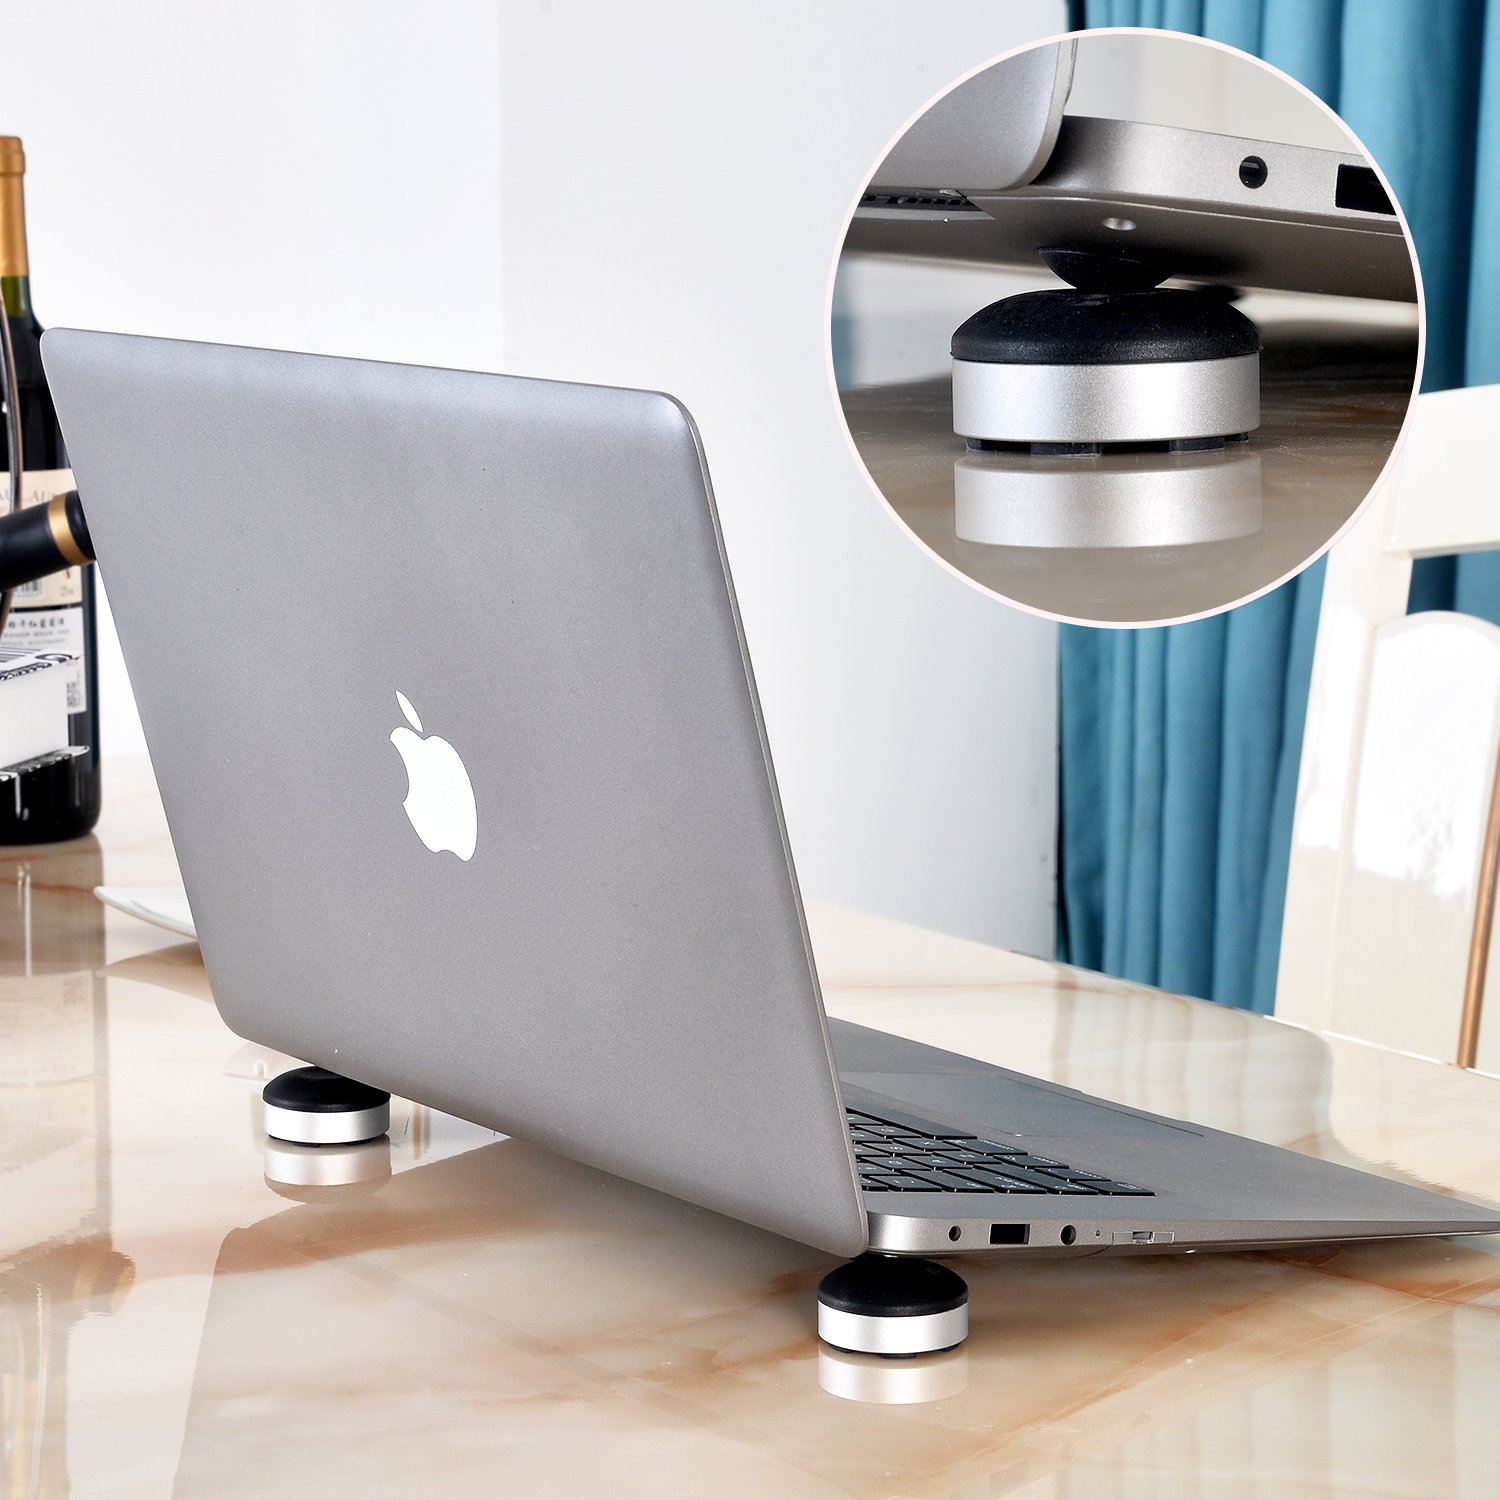 Mini Laptop Cooling Stand Holder portable